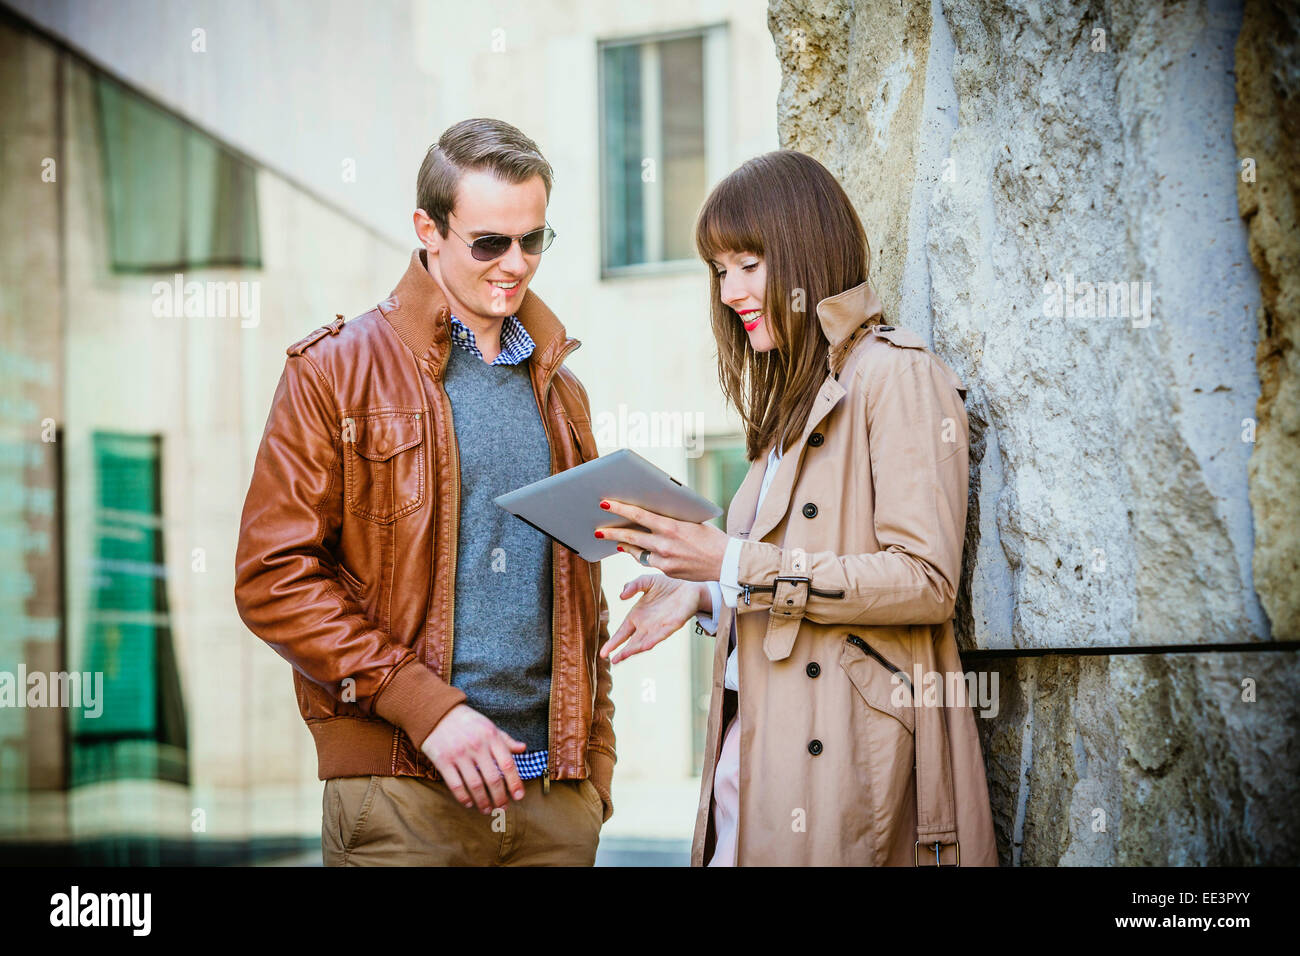 Young couple using digital tablet outdoors, Munich, Bavaria, Germany - Stock Image